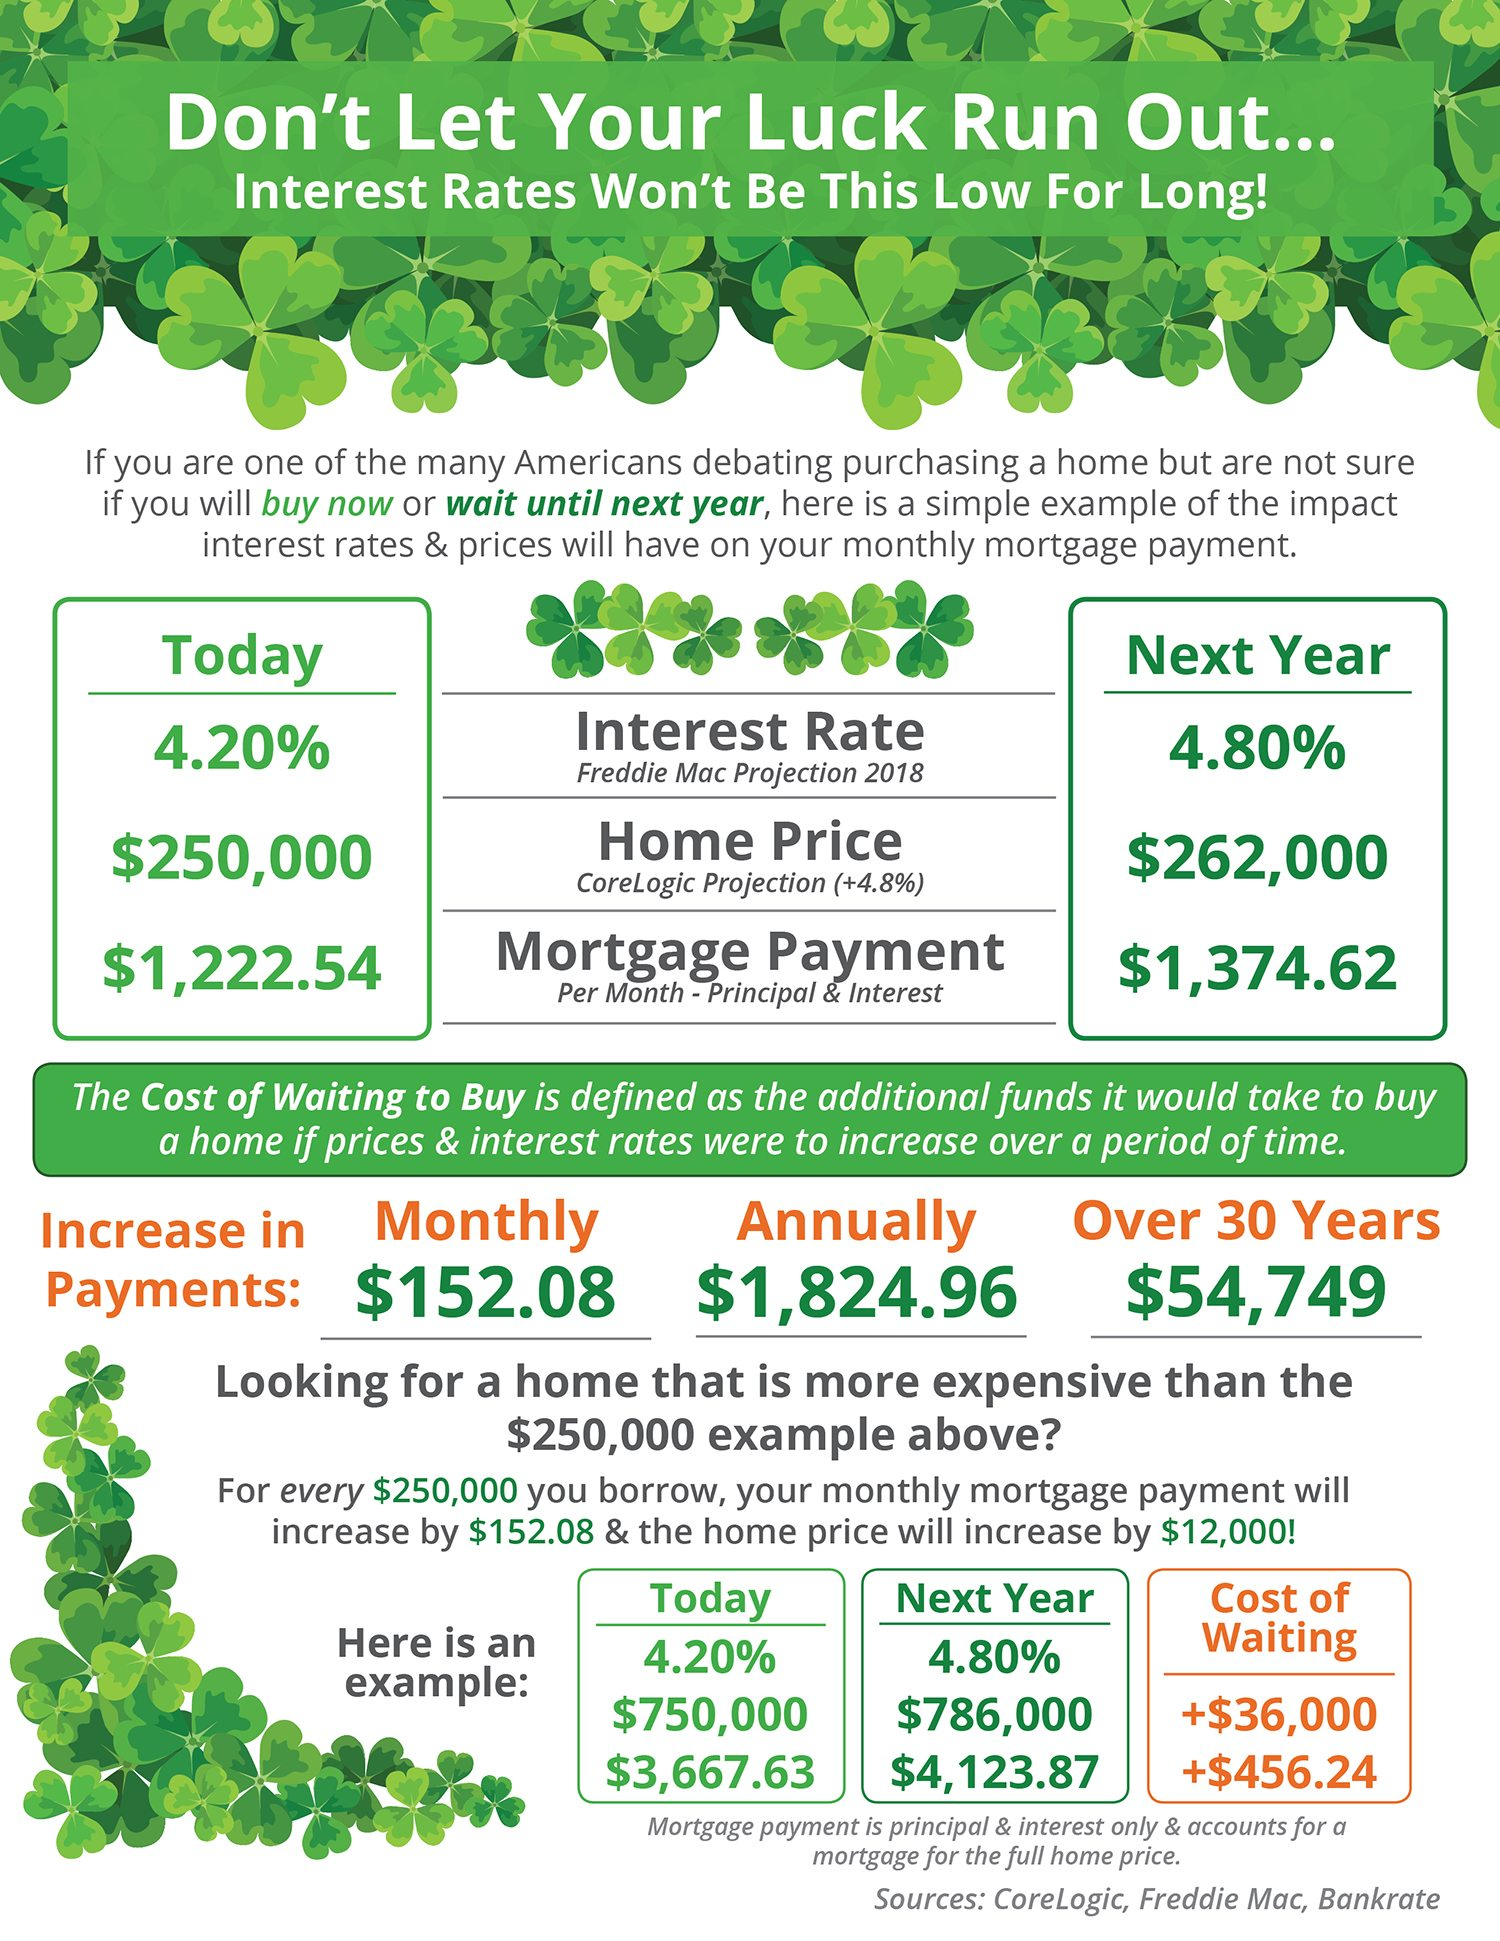 Is Your Luck Running Out In Buying A Home?